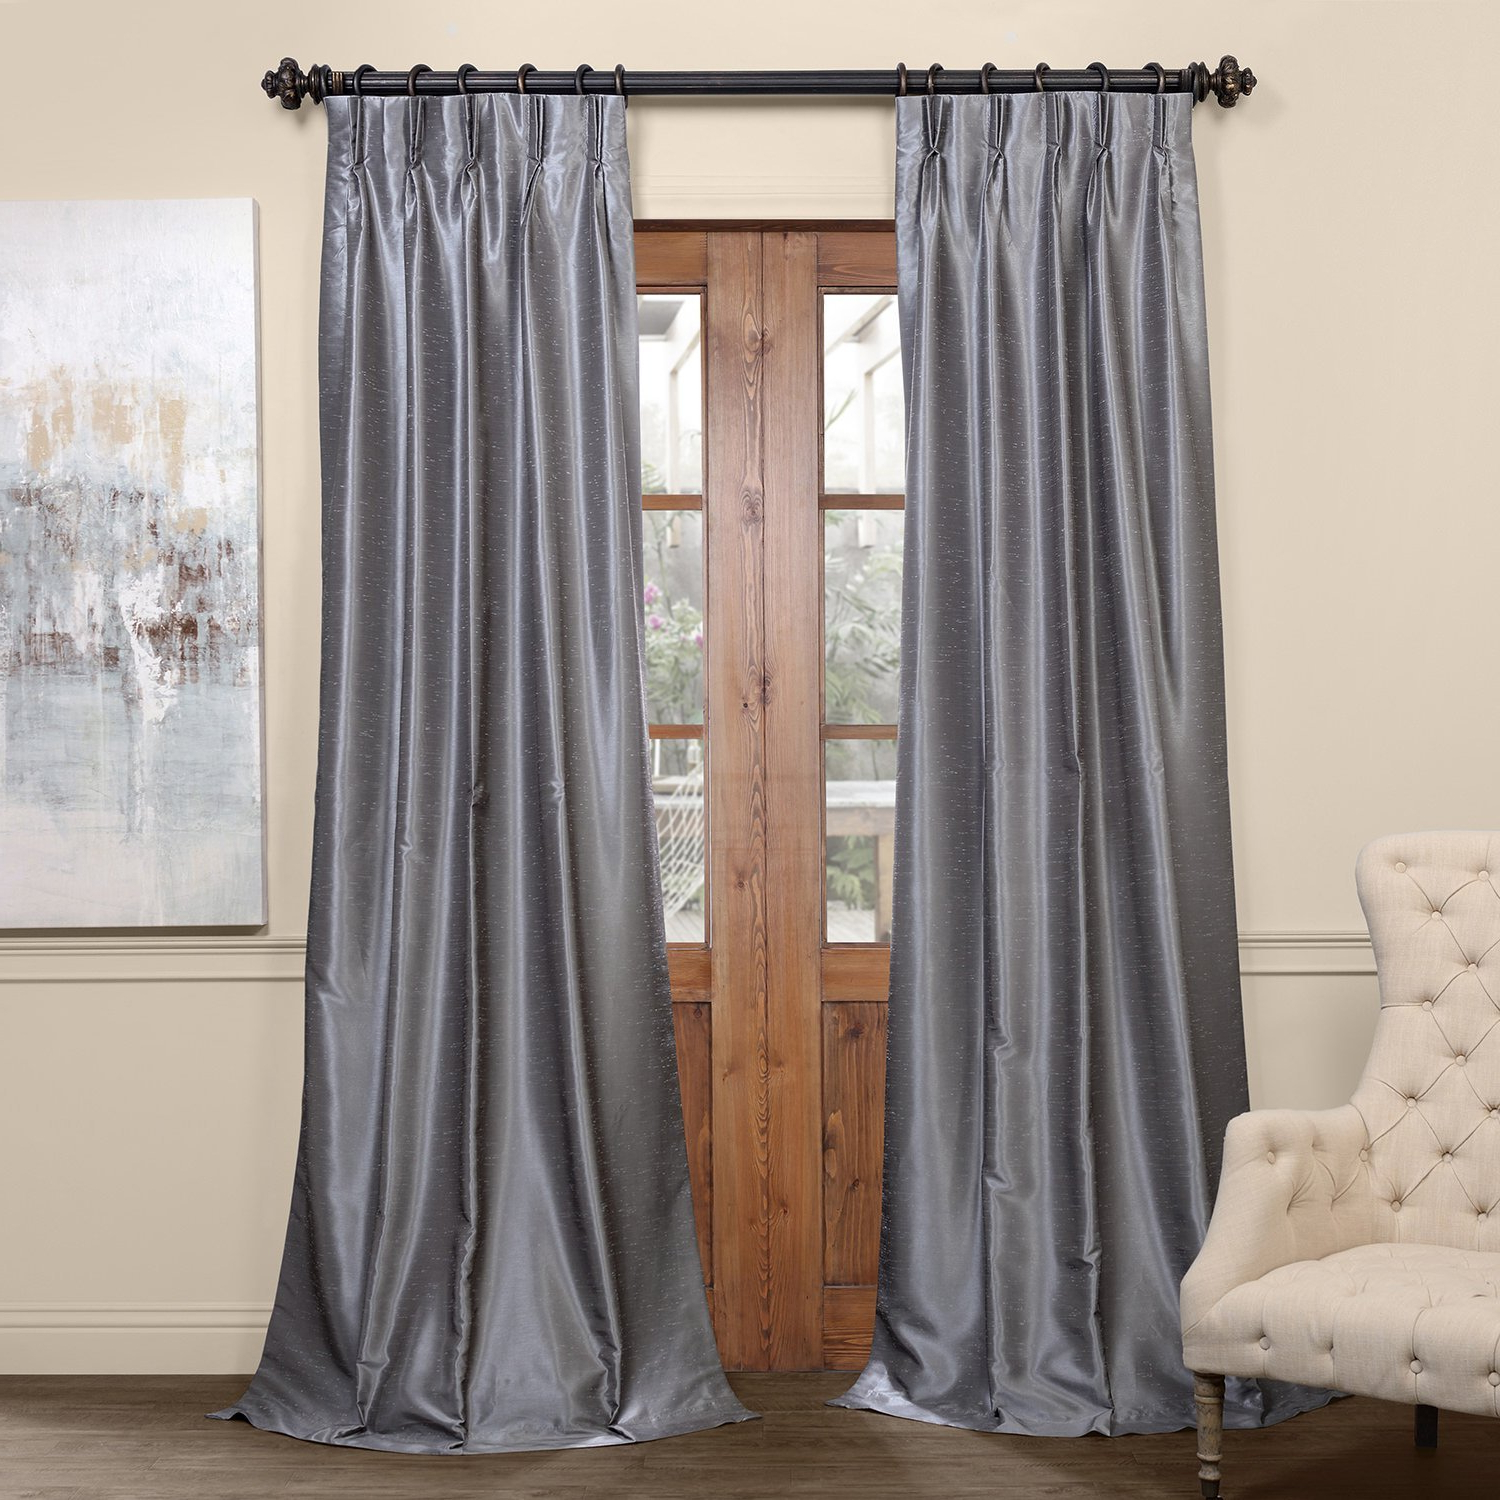 Most Current Details About Pdch Kbs7Bo 96 Fp Pleated Blackout Vintage Textured Faux  Dupioni Silk Curtain, For Storm Grey Vintage Faux Textured Dupioni Single Silk Curtain Panels (View 6 of 20)